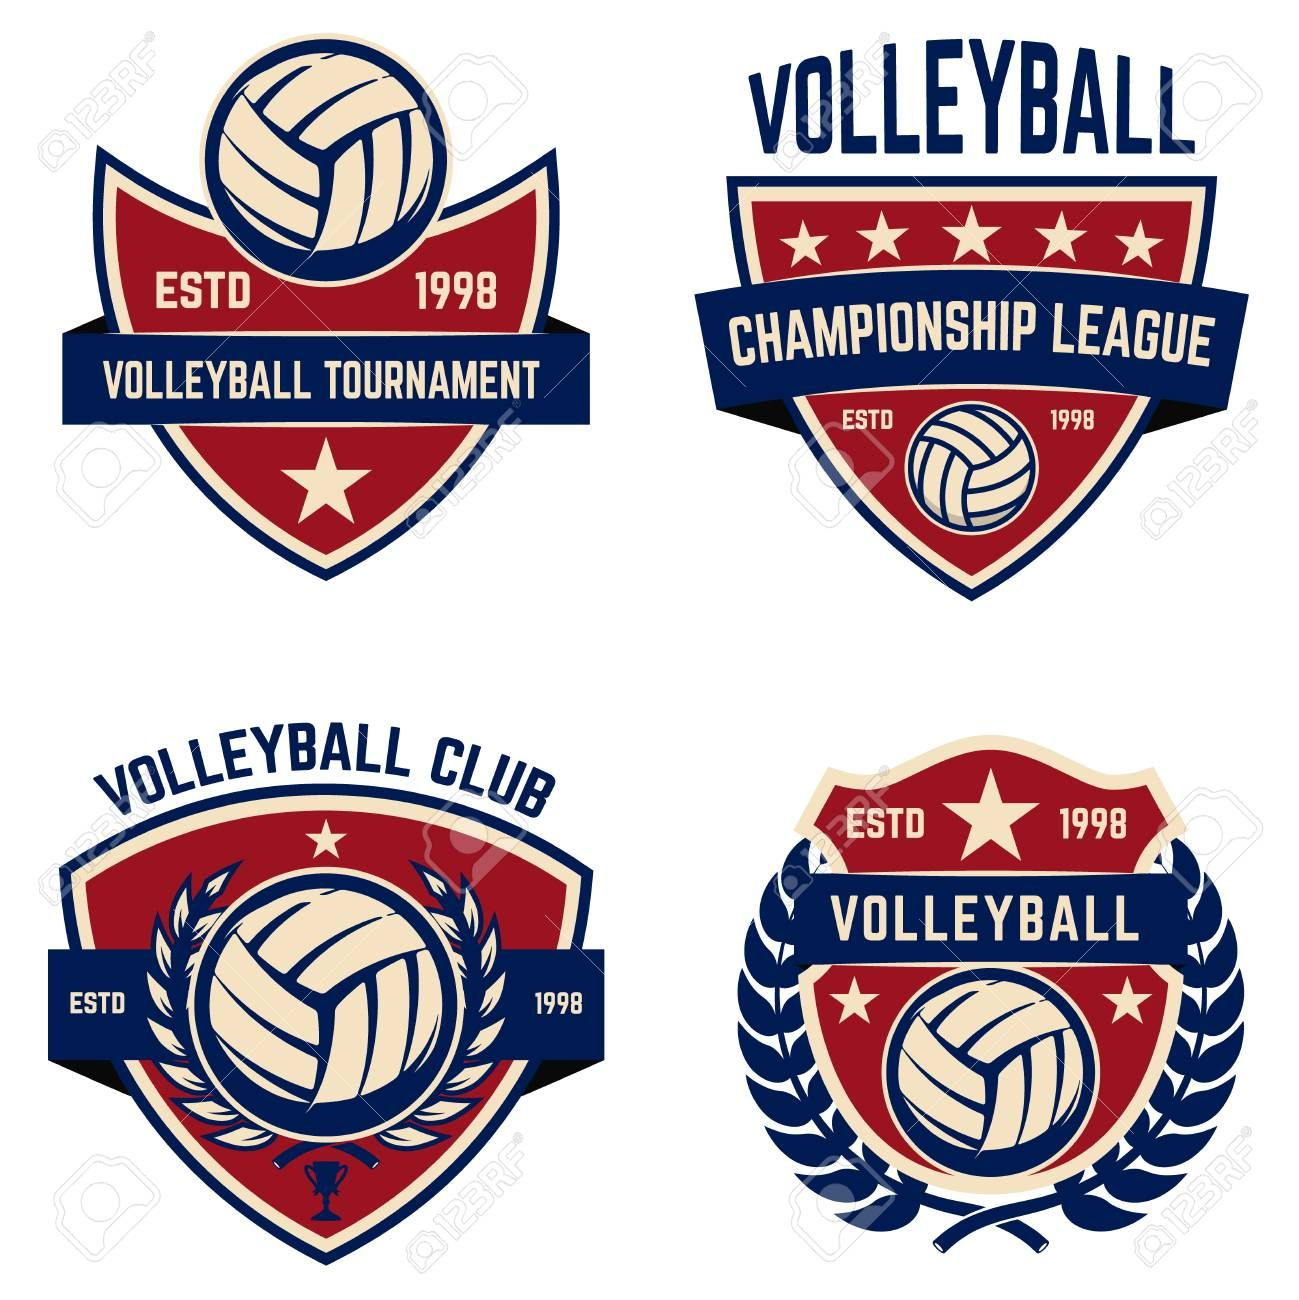 Set Of Volleyball Champions League Emblems Design Elements For Logo Label Emblem Sign Vector Illustration Aff Lea In 2020 Champions League Volleyball Emblems